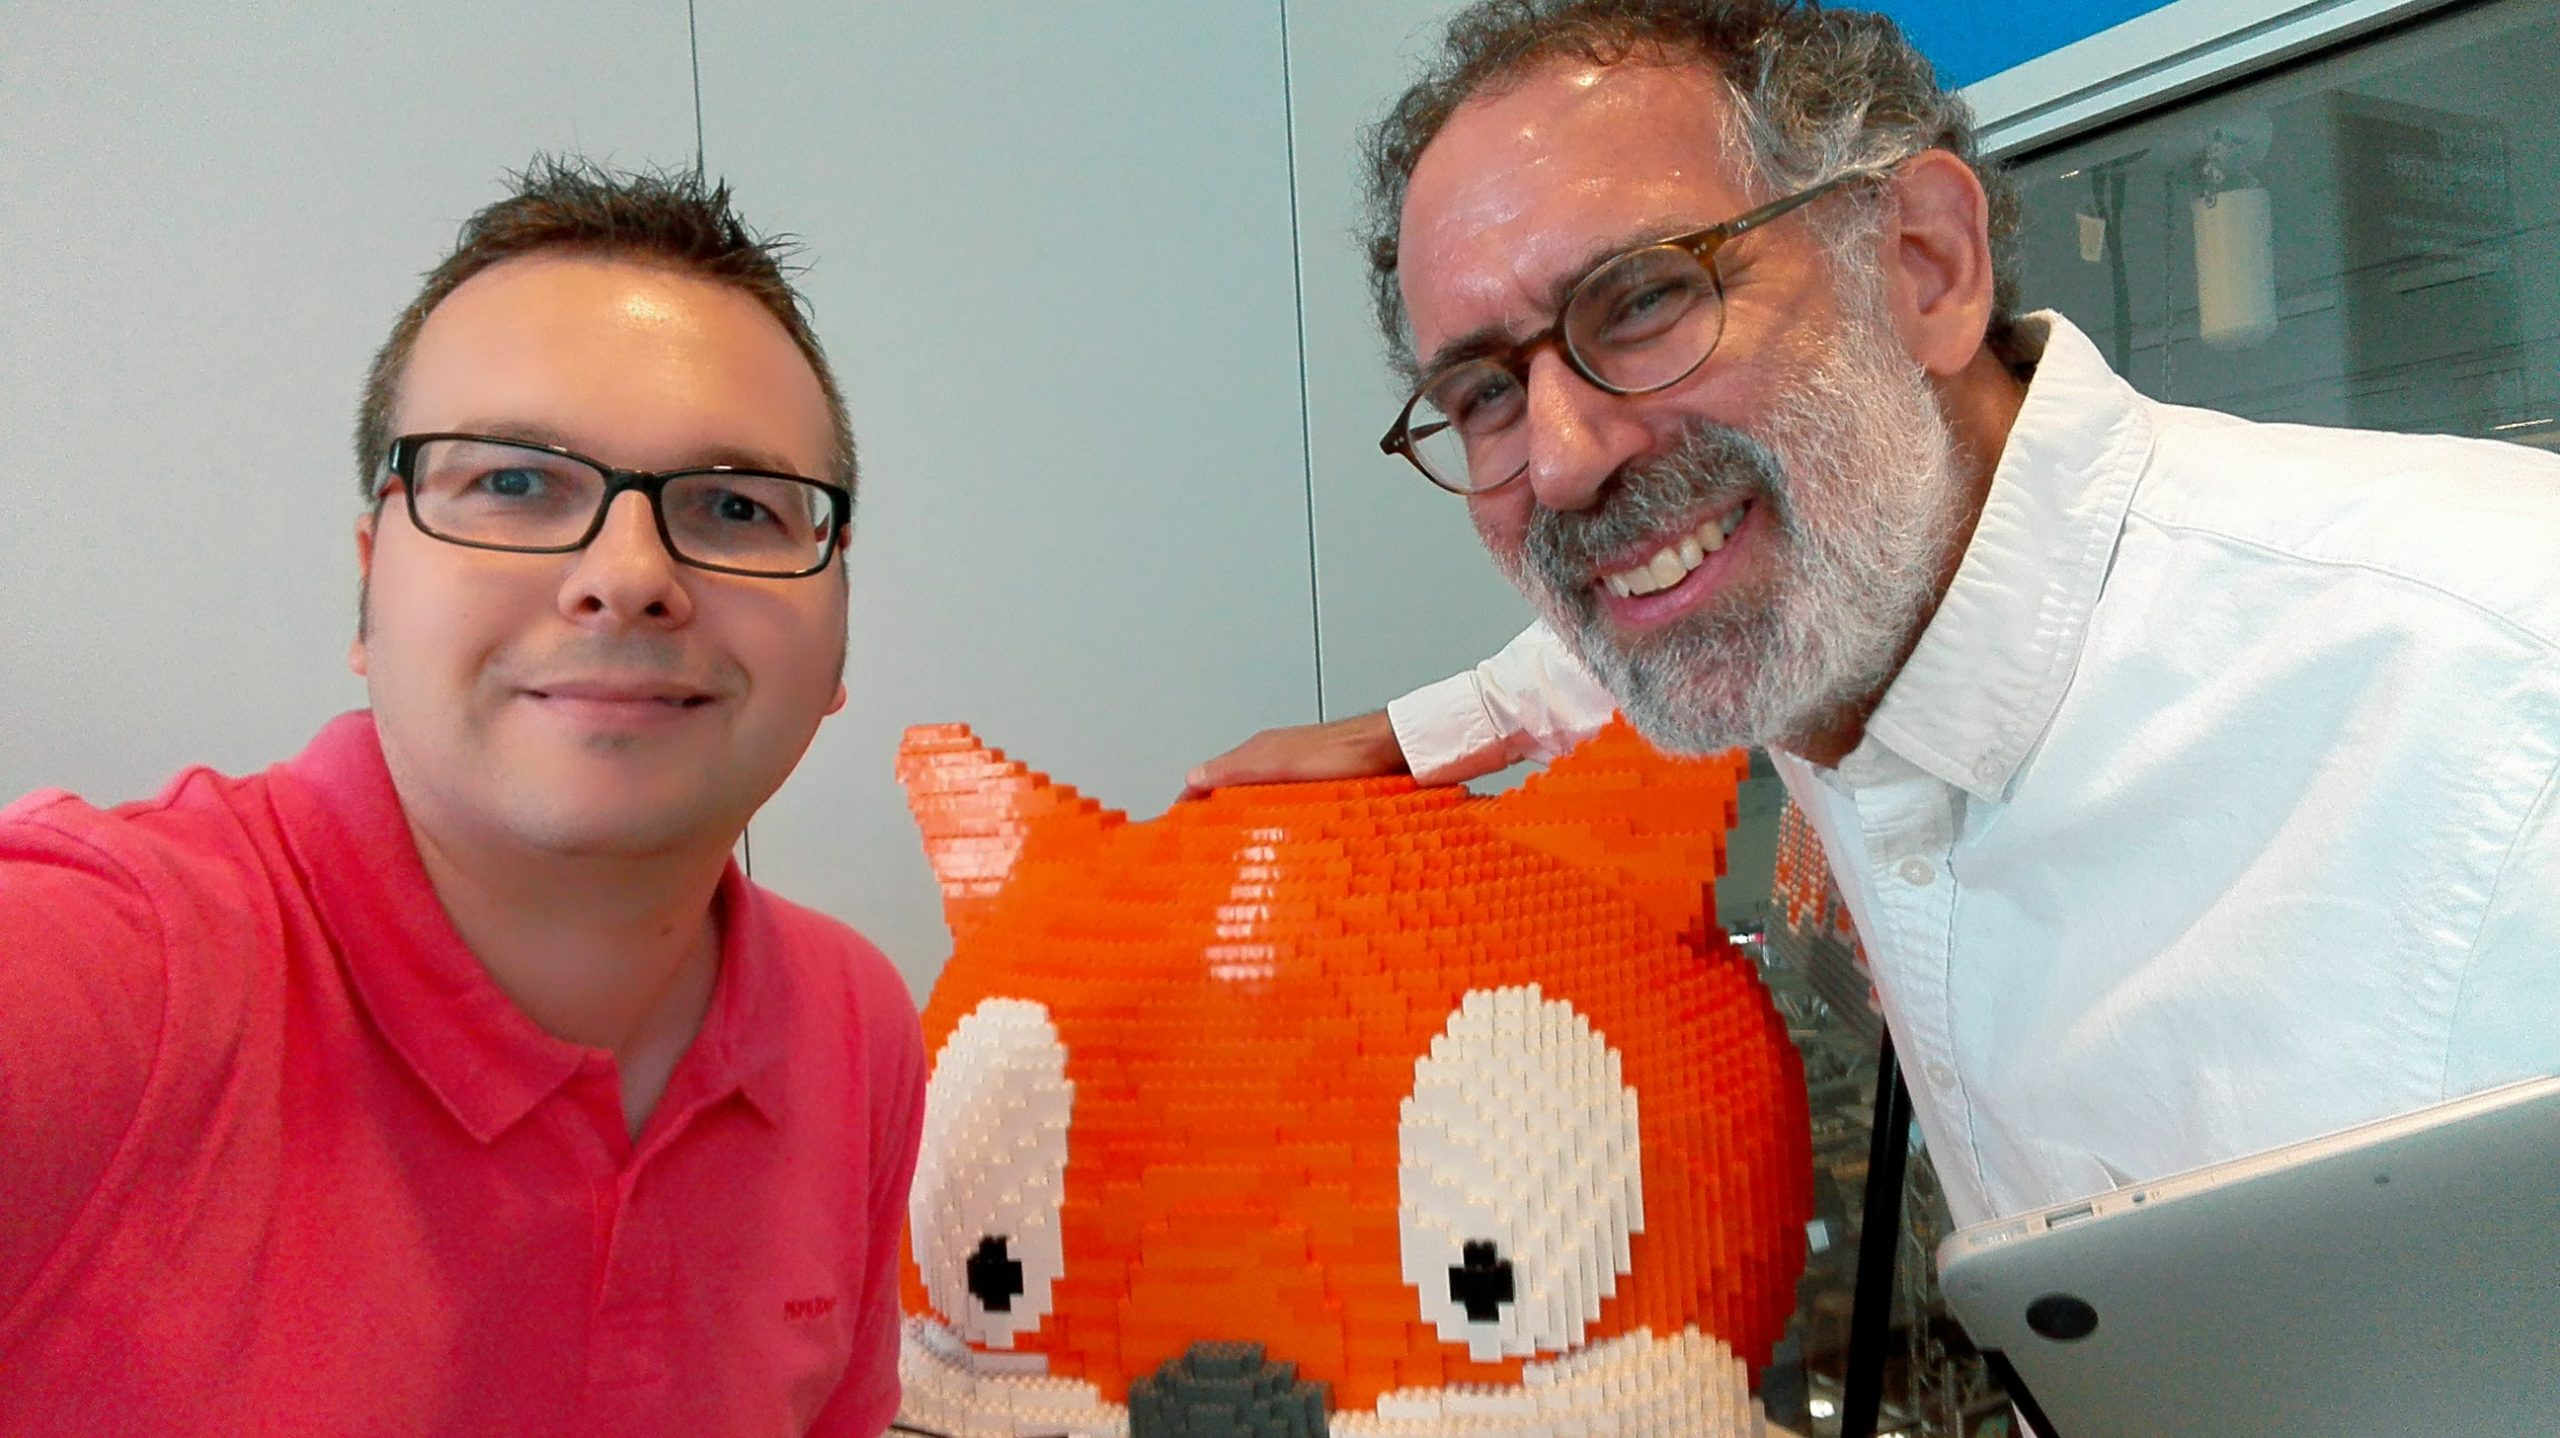 Codelearn visits the MIT and interviews the creator of Scratch